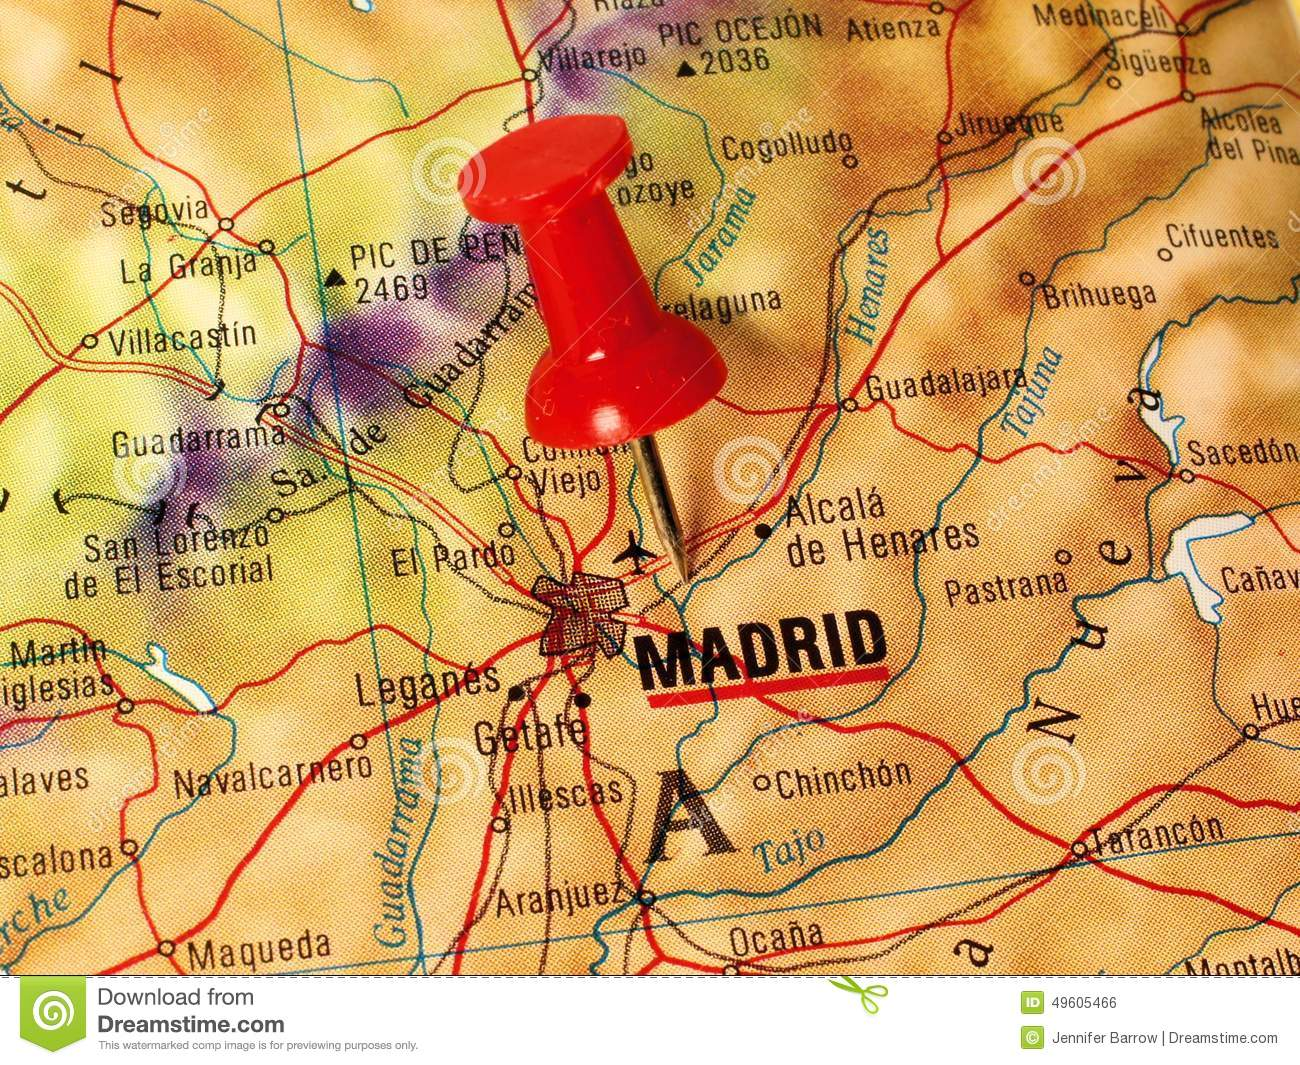 Madrid on a map stock photo. Image of travel, direction - 49605466